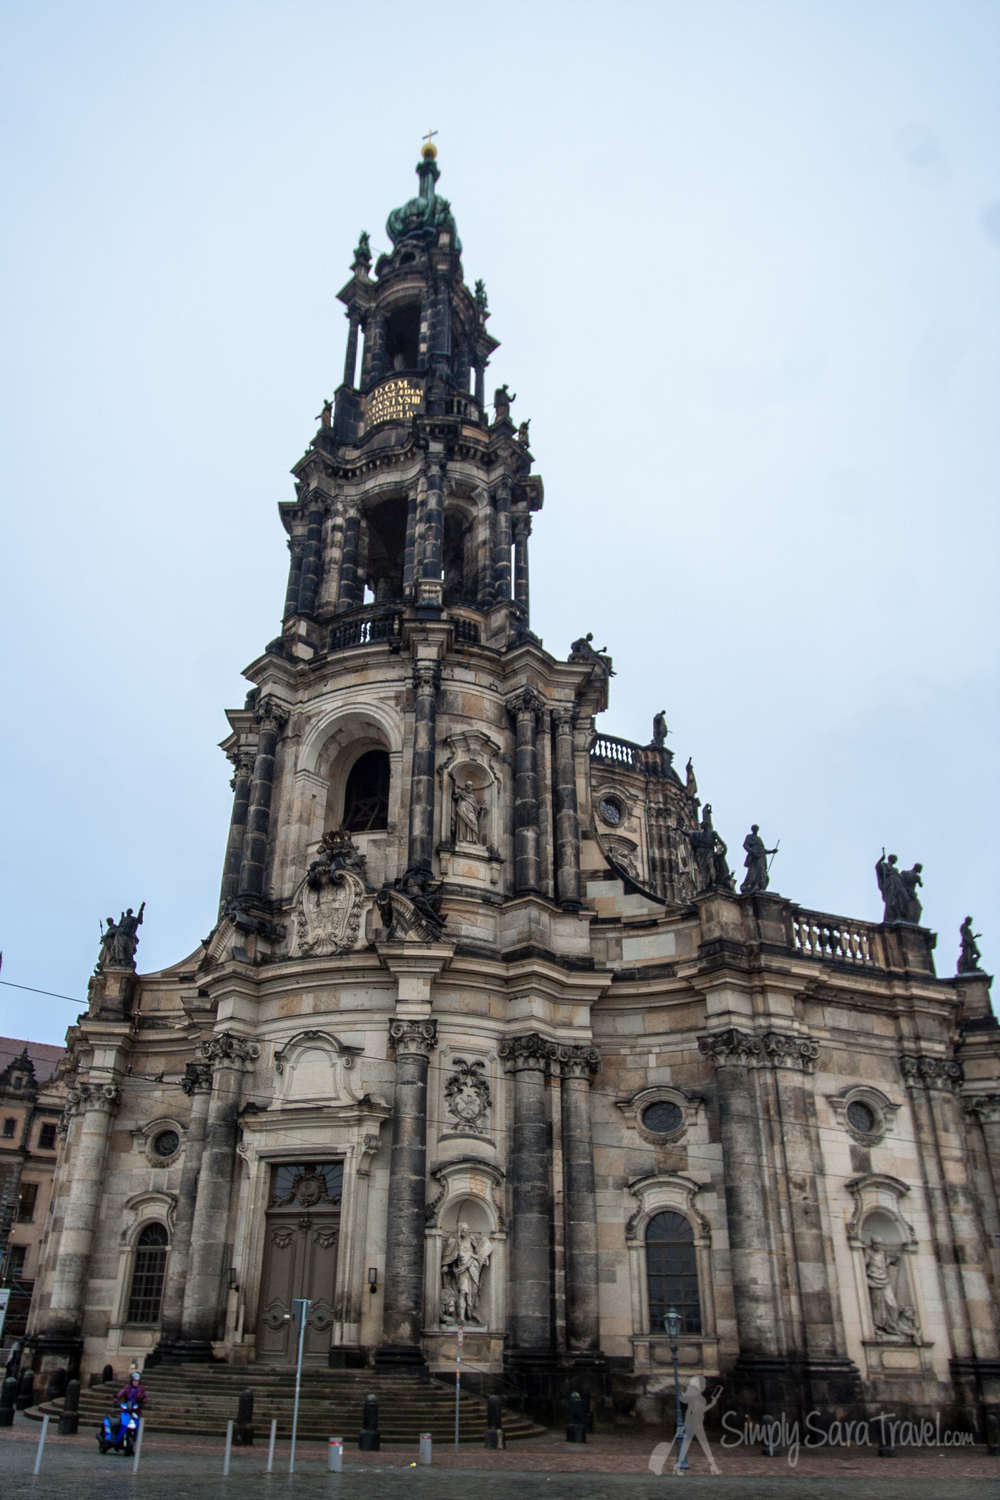 The Christmas markets attracted us to Dresden, Germany and had it not been for that, we probably wouldn't have taken the time to add this lovely city to our travel itinerary! (Pictured above: the Dresden Cathedral, known as Katholische Hofkirche)